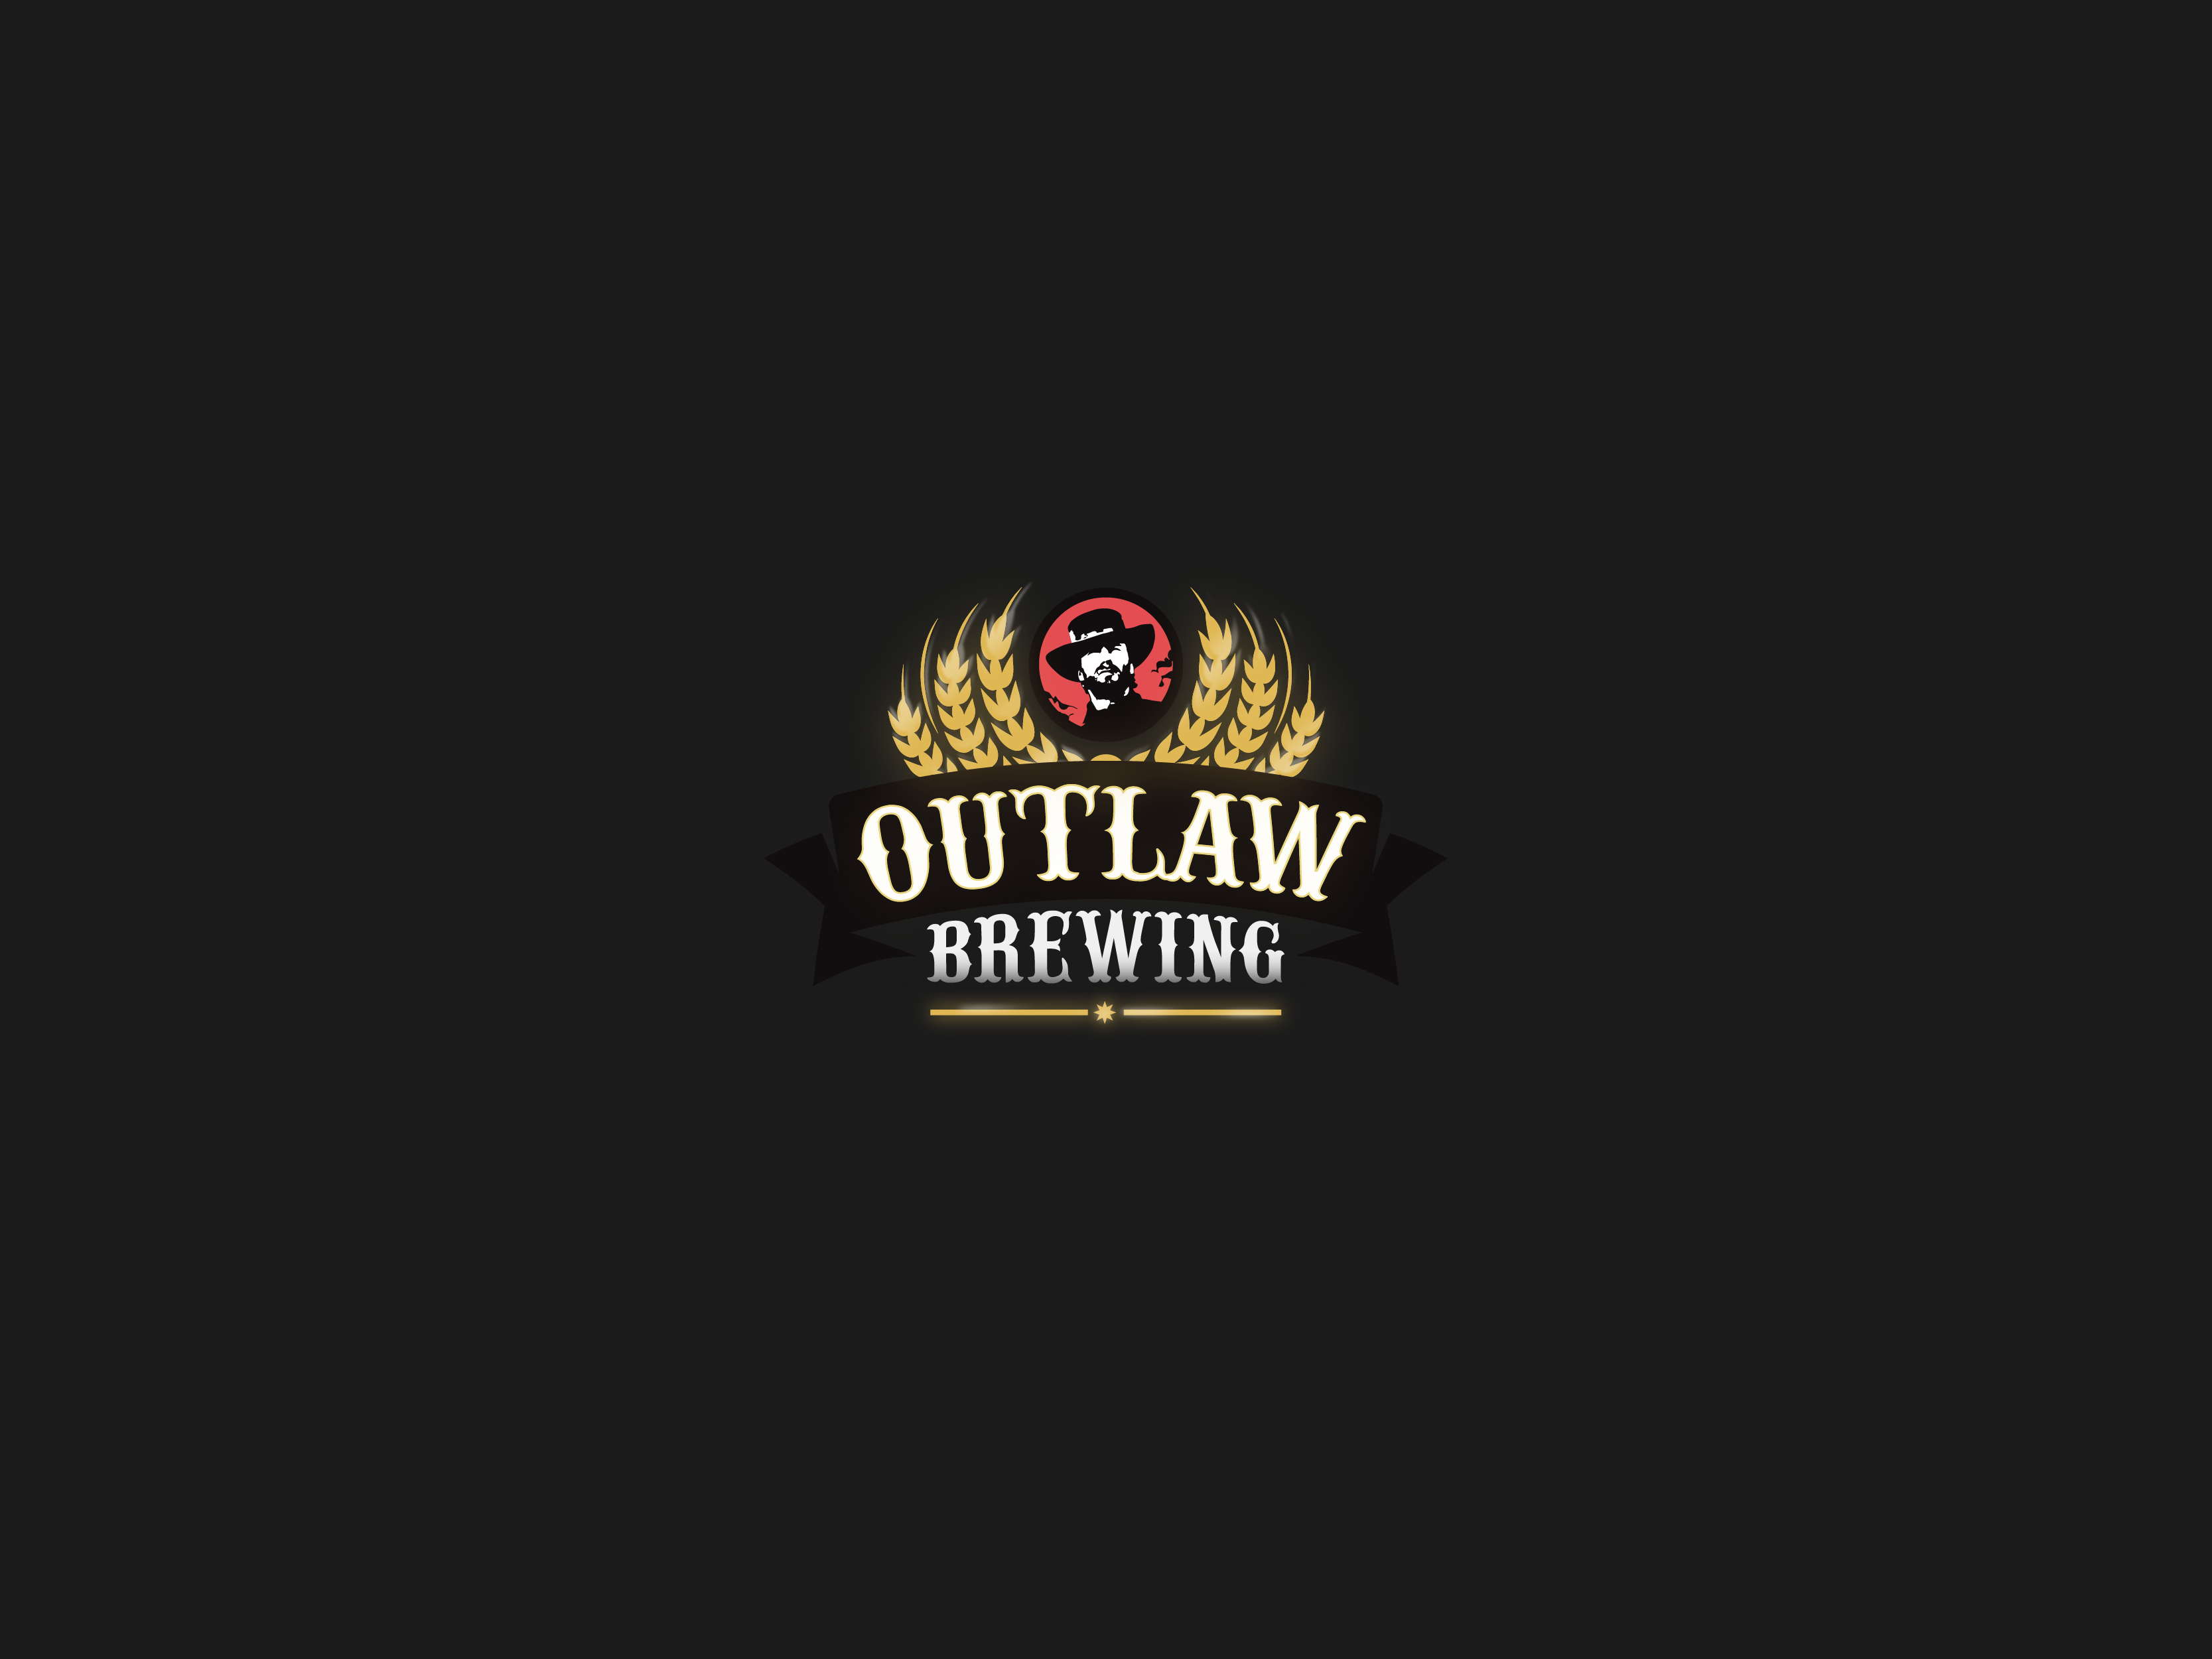 logo design for outlaw brewing